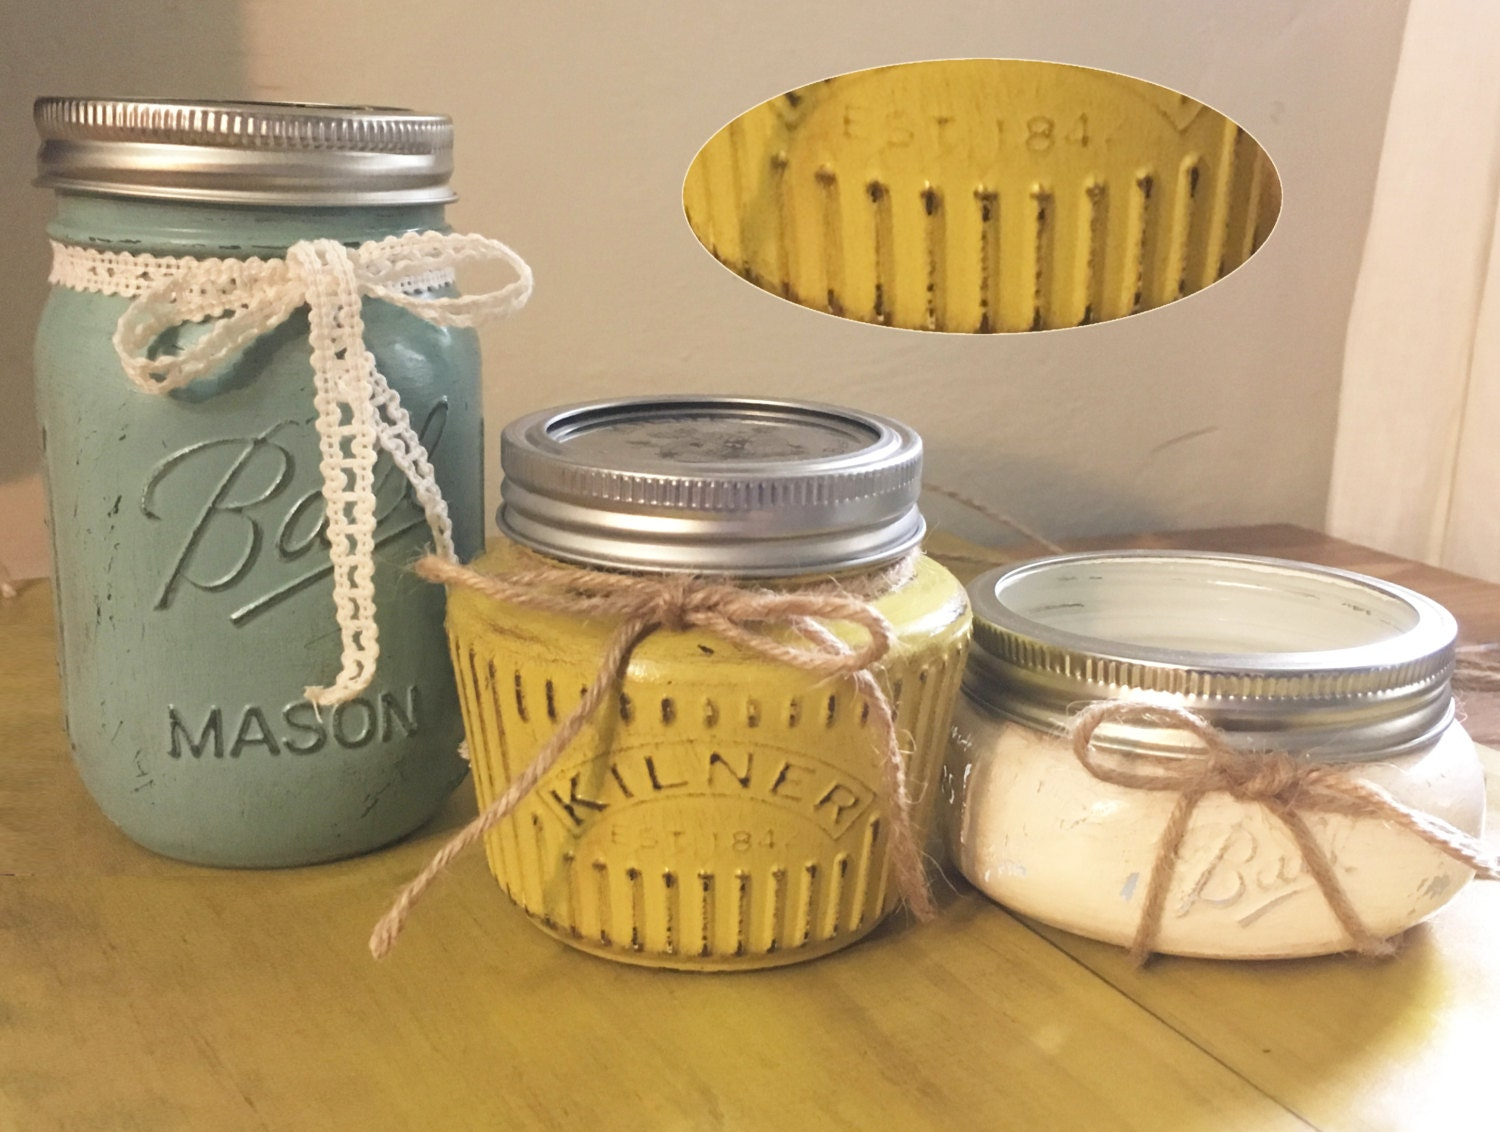 Mason Jar Bathroom Accessories 6 Piece Mason Jar Decor Bathroom Organization Mason Jar